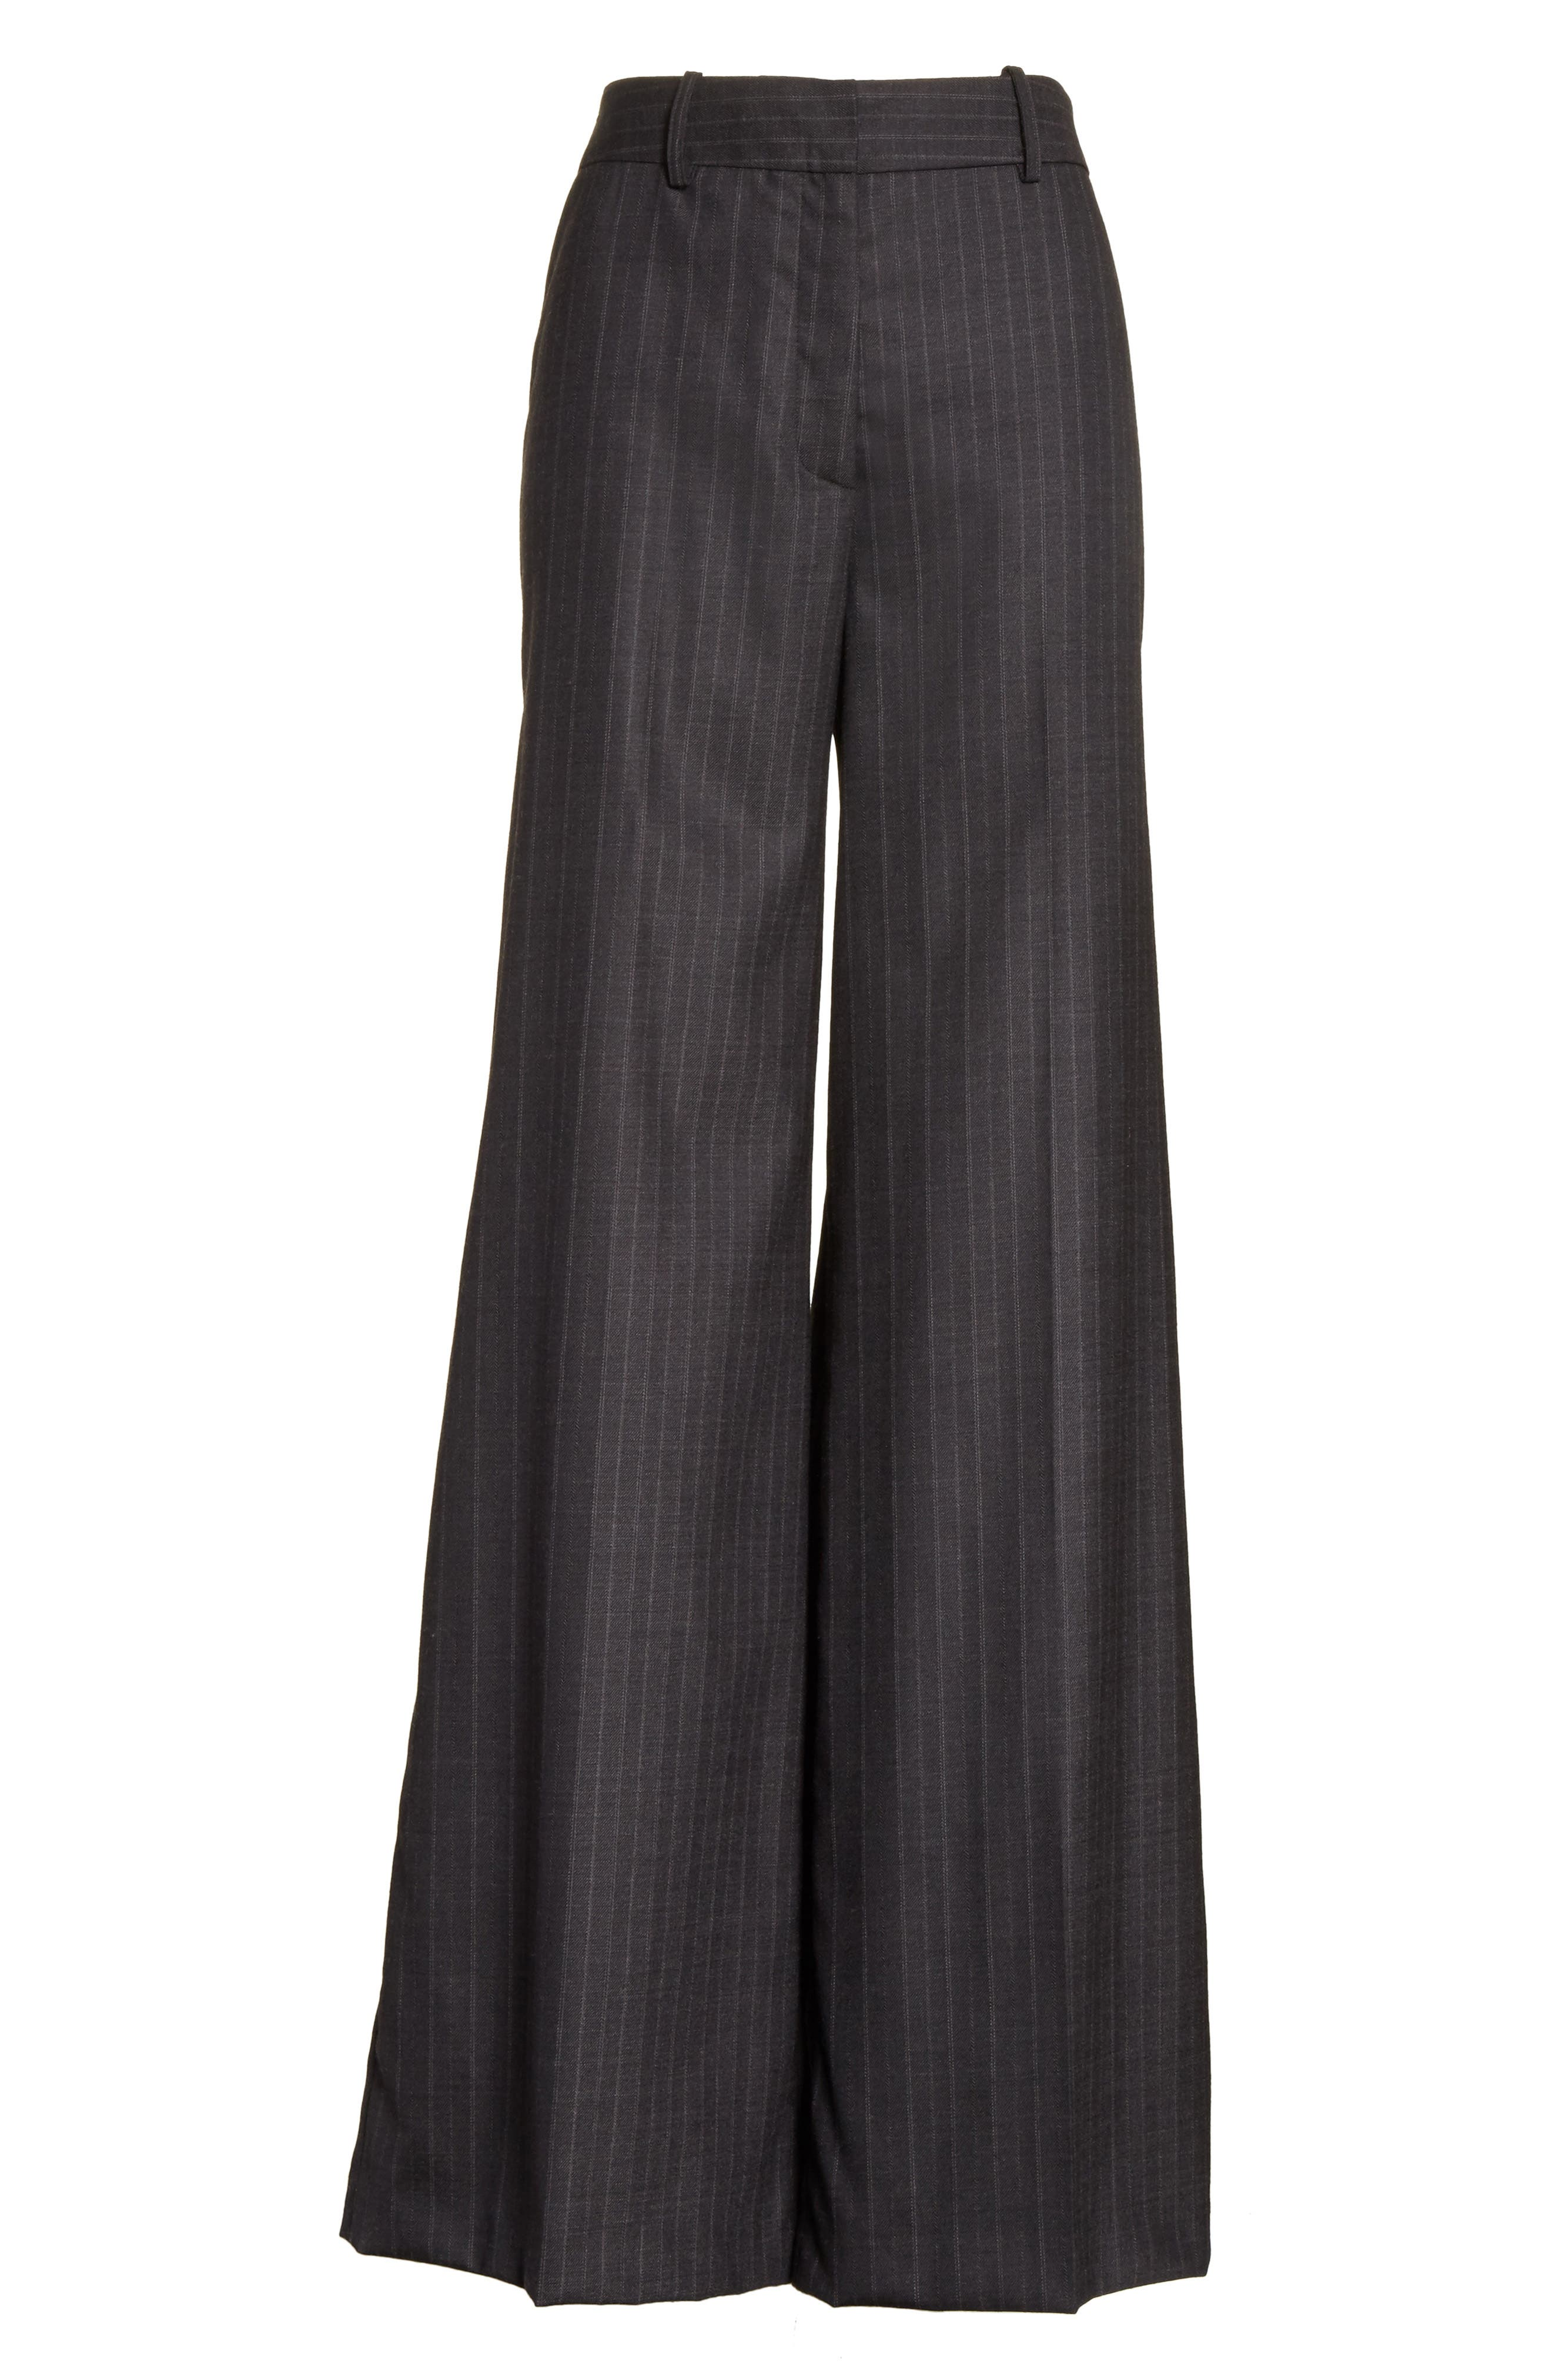 Sia Pinstripe Italian Stretch Wool Trousers,                             Alternate thumbnail 6, color,                             020